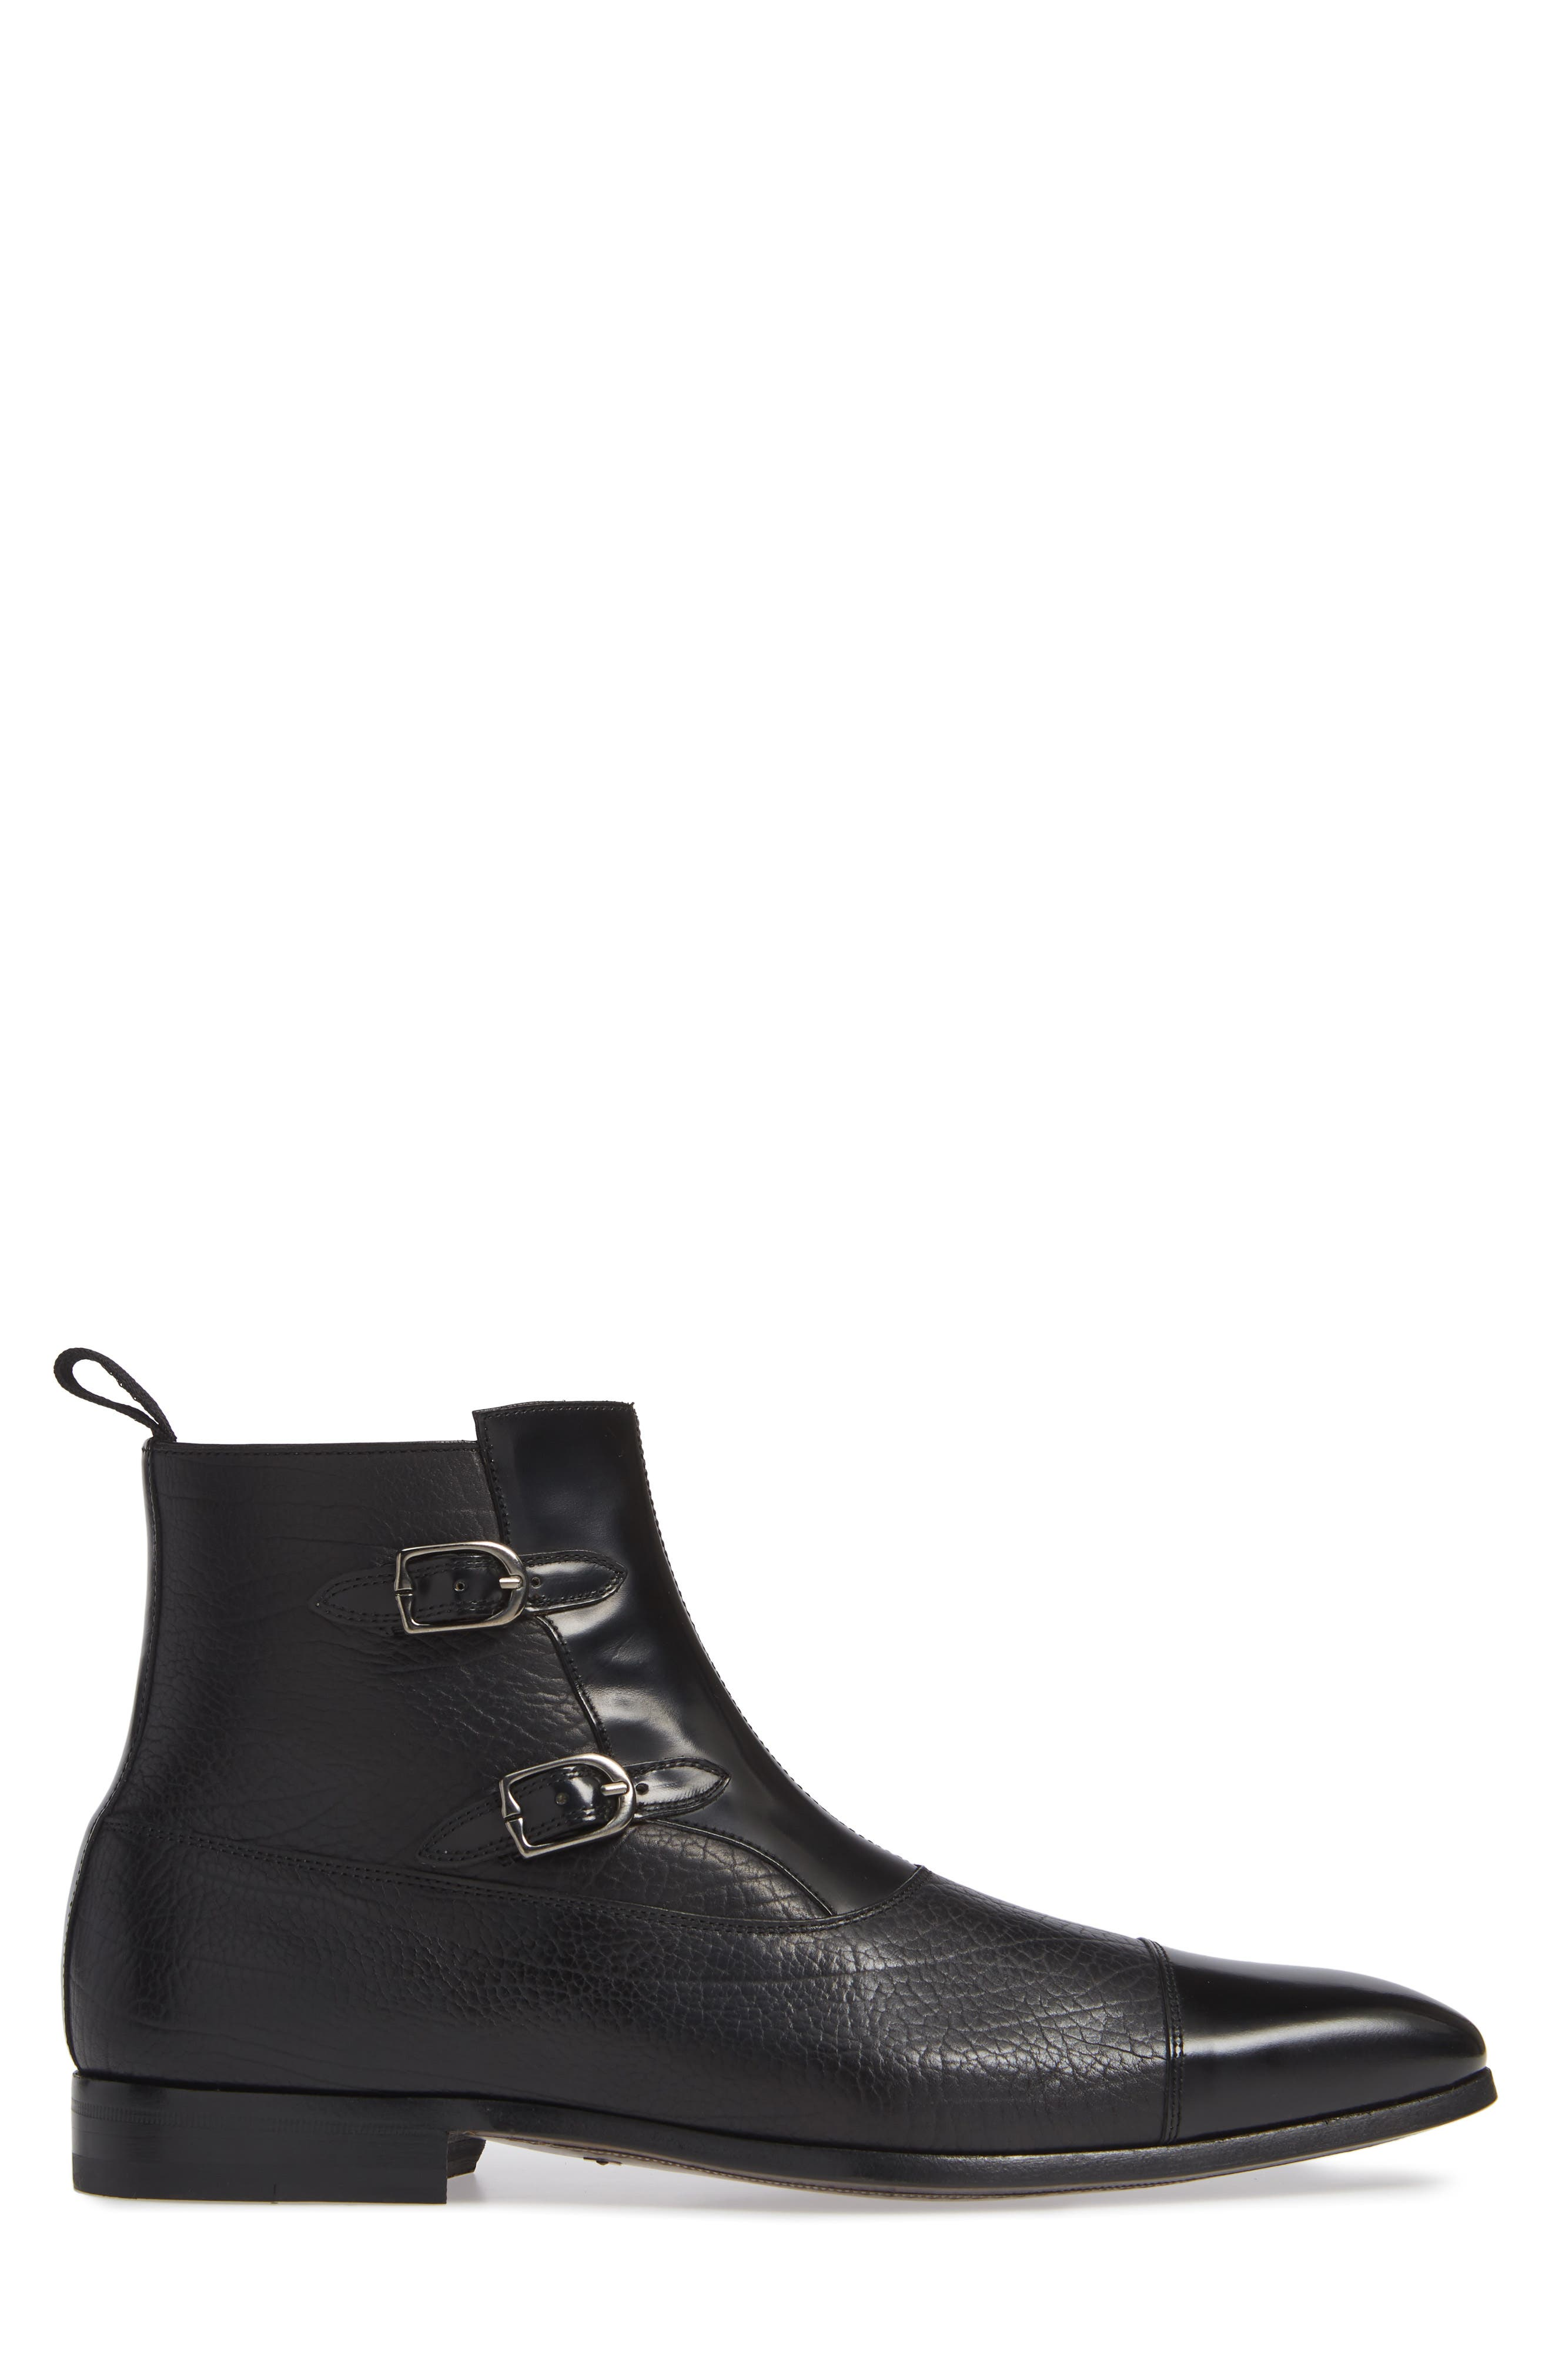 Tracy Double Buckle Cap Toe Boot,                             Alternate thumbnail 3, color,                             BLACK LEATHER